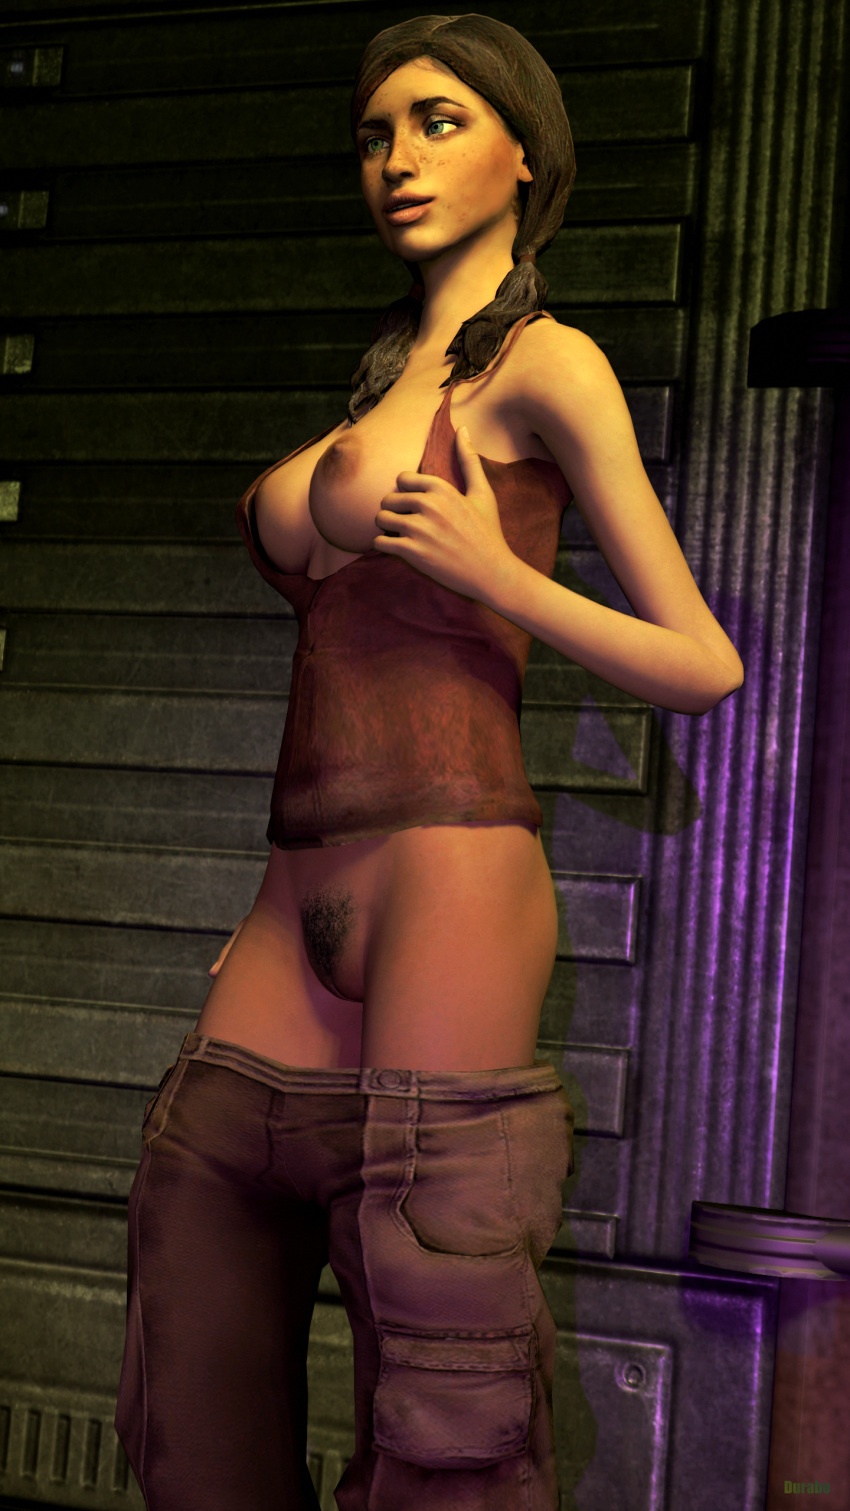 Dead space ellie nude exposed image